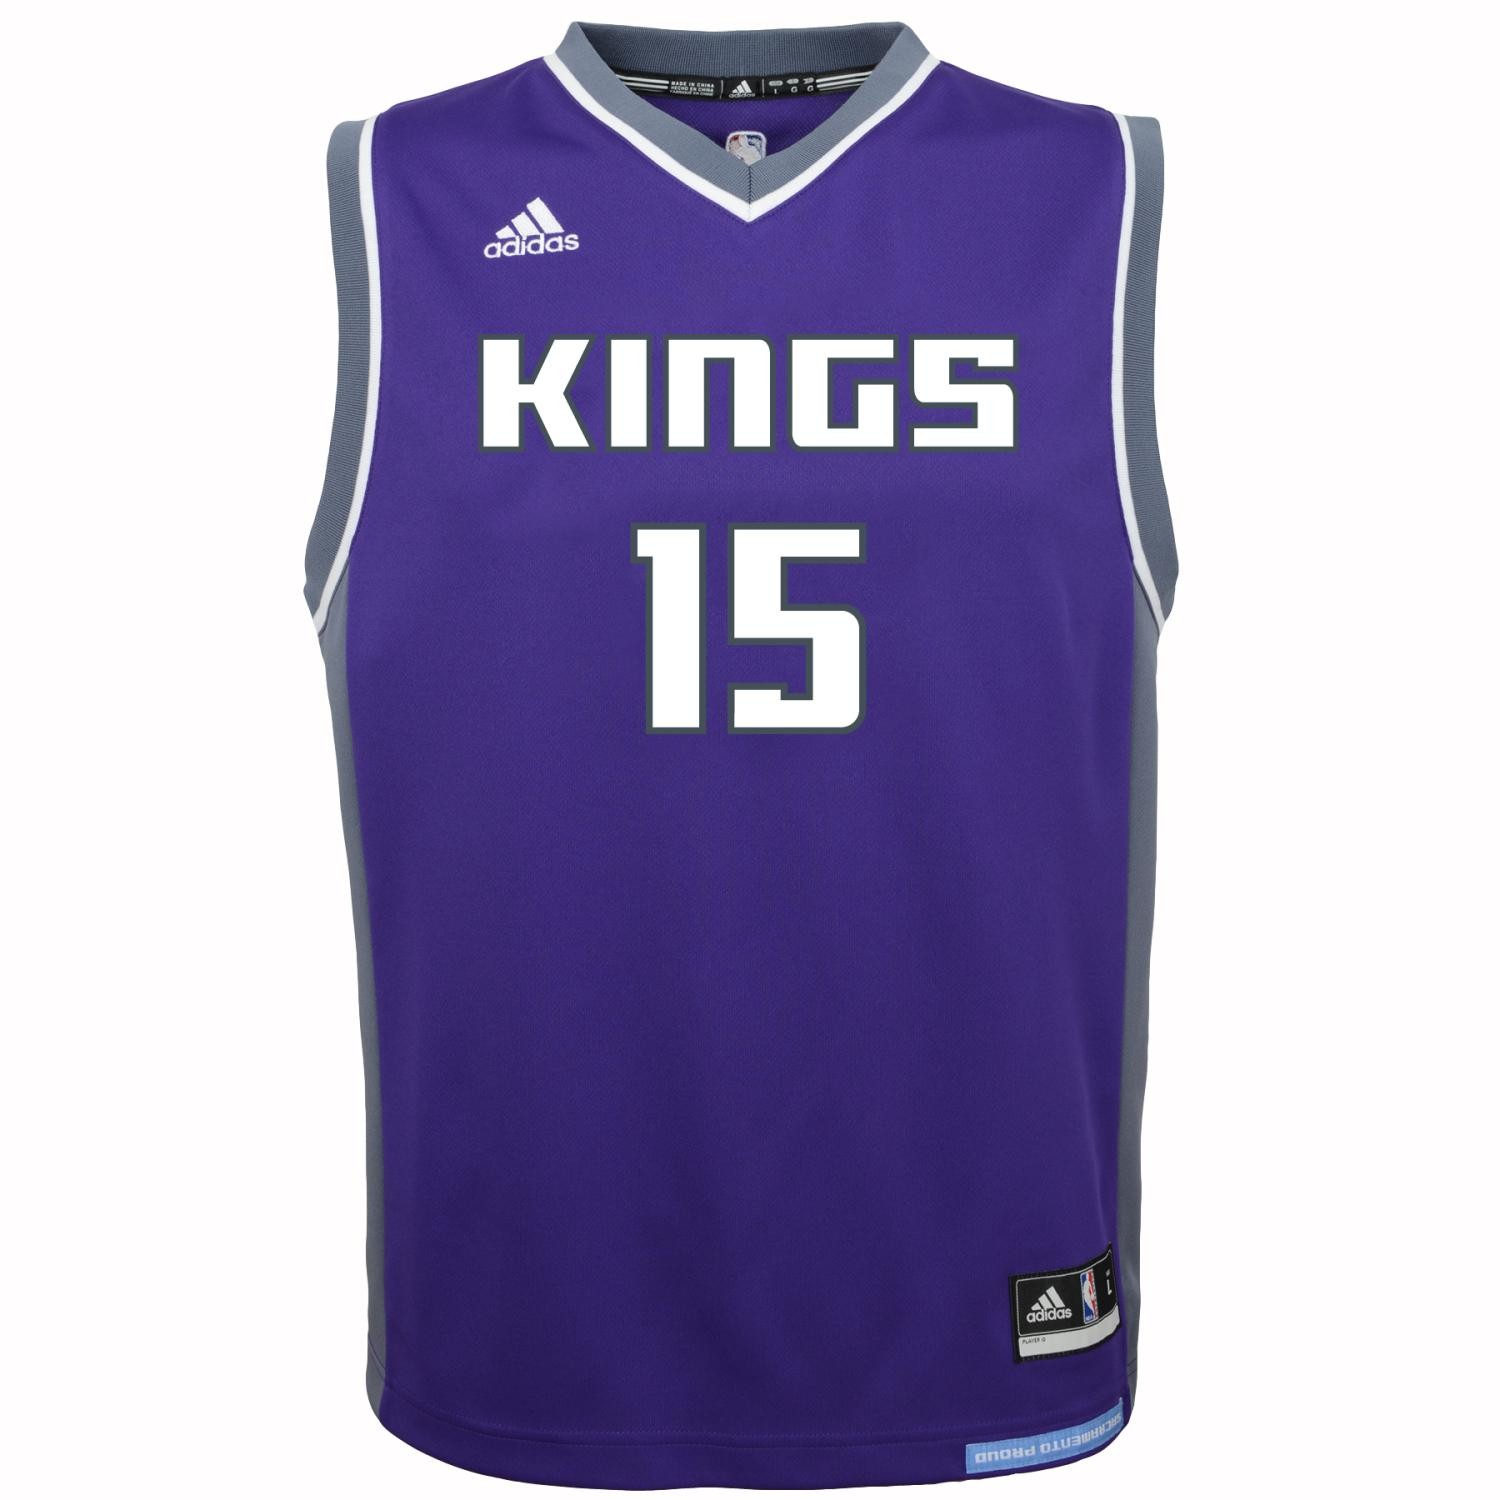 944eb597 Details about DeMarcus Cousins Sacramento Kings Adidas NBA Replica Youth  Jersey